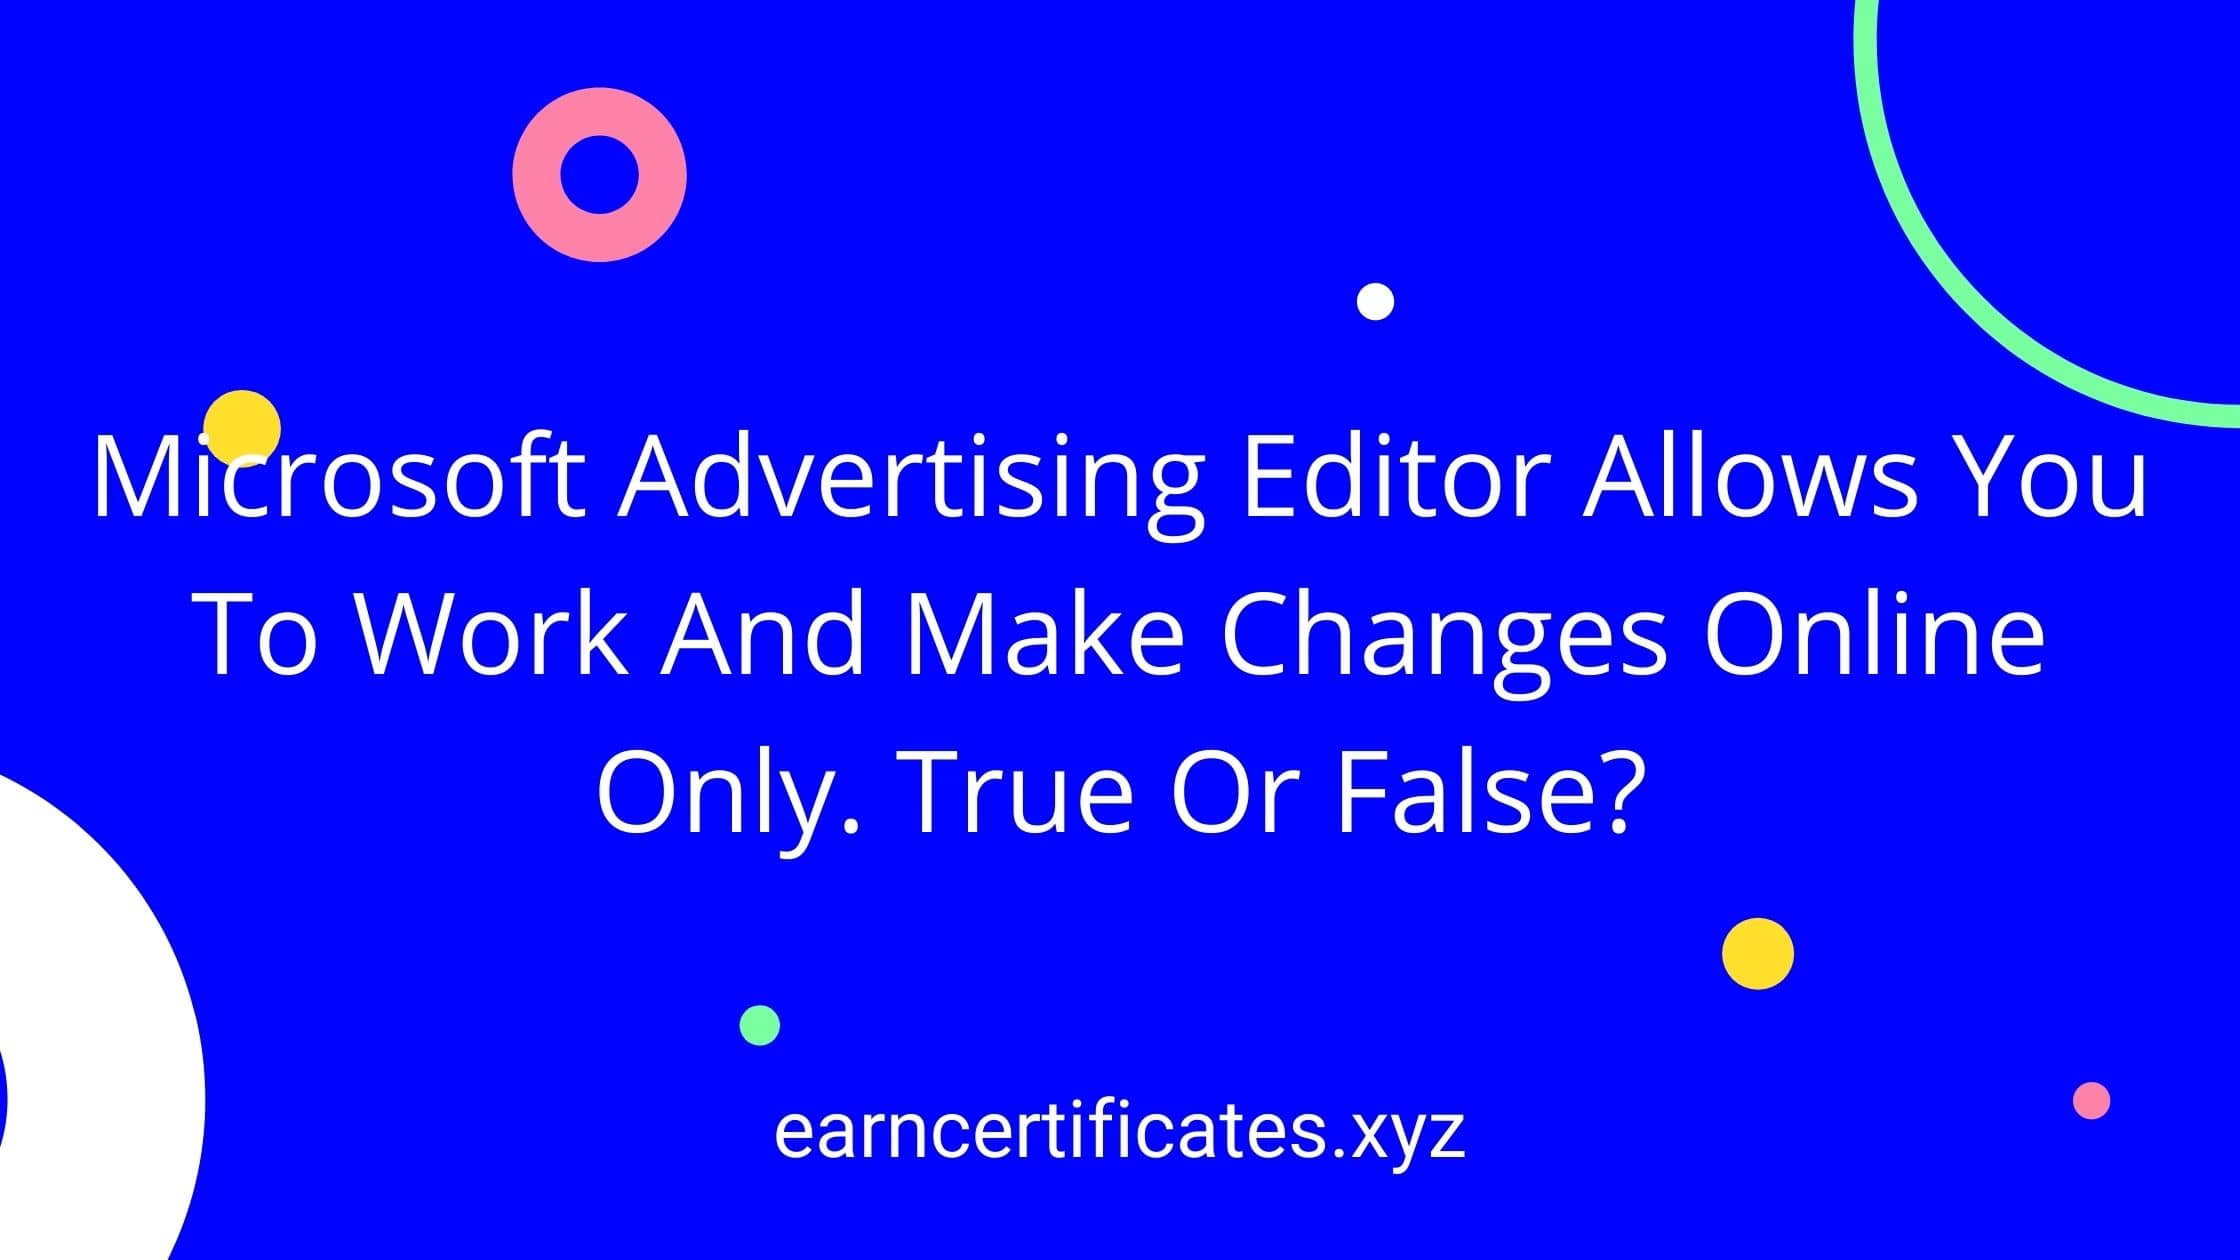 Microsoft Advertising Editor Allows You To Work And Make Changes Online Only. True Or False?